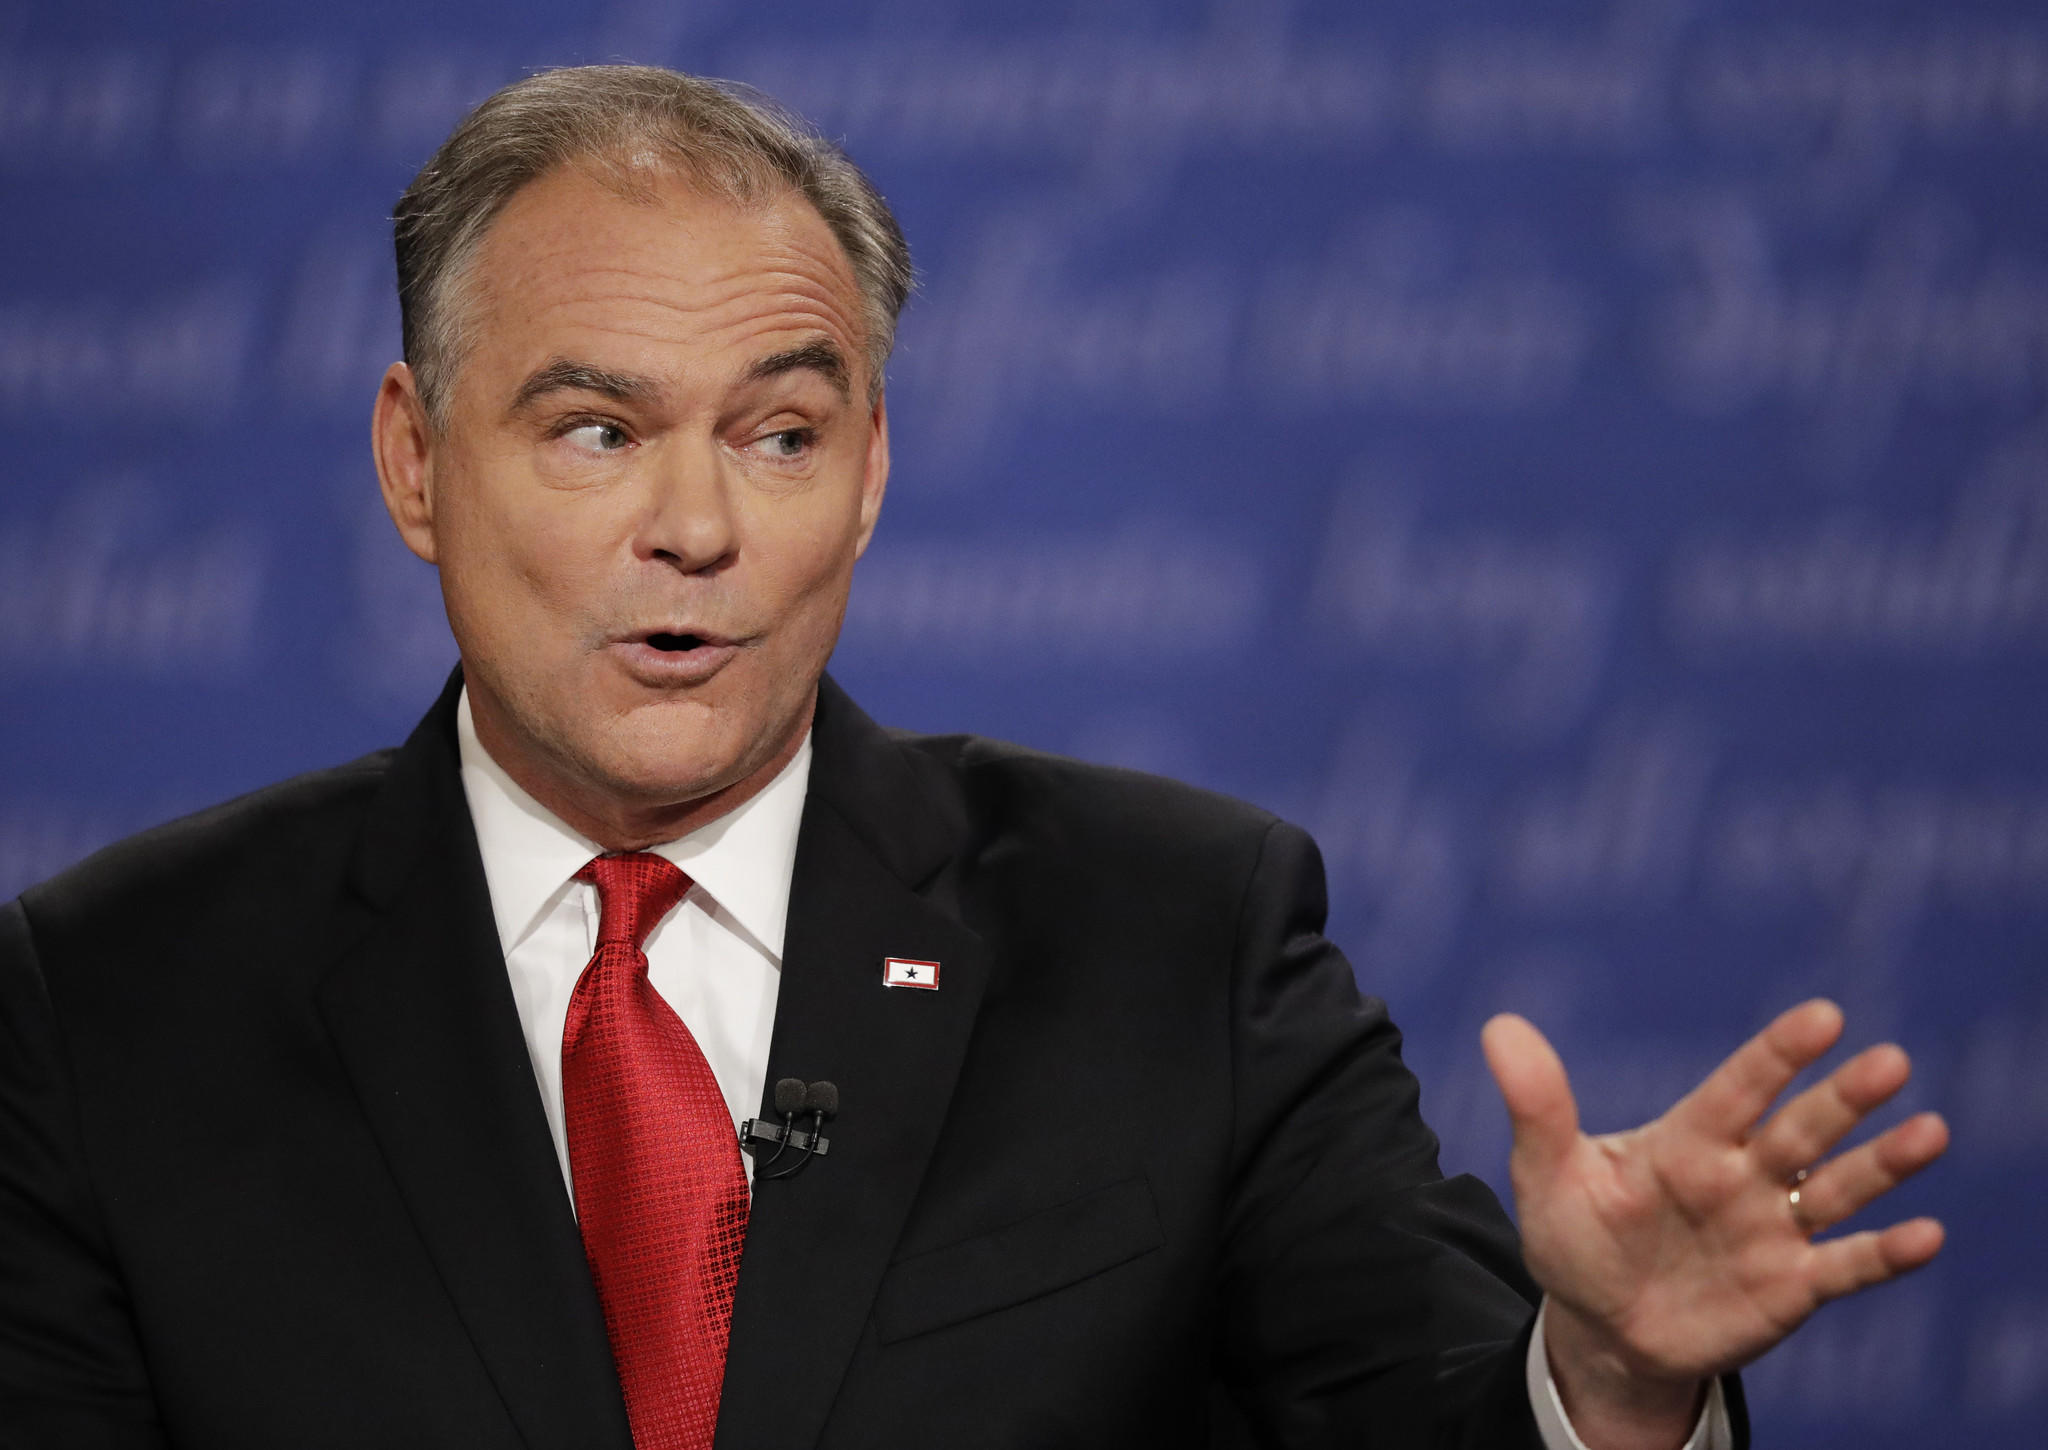 Democratic vice presidential nominee Tim Kaine defended running mate Hillary Clinton during the debate at Longwood University in Farmville, Va.